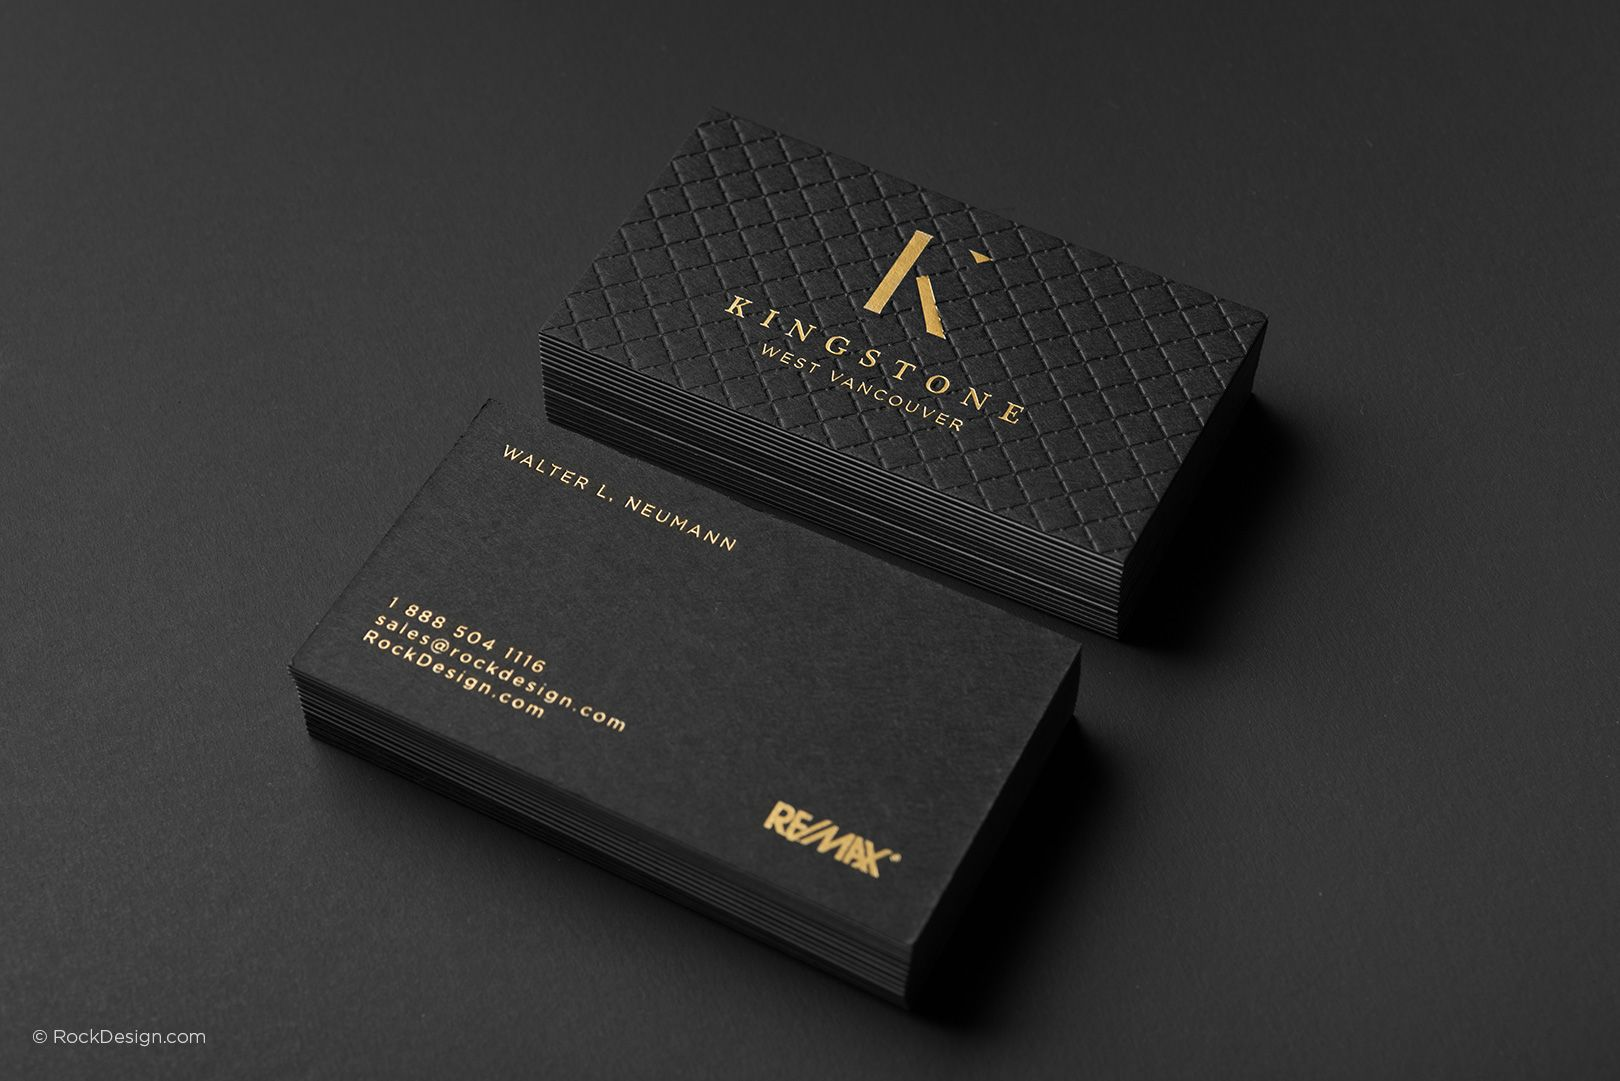 Luxury business cards akbaeenw luxury business cards colourmoves